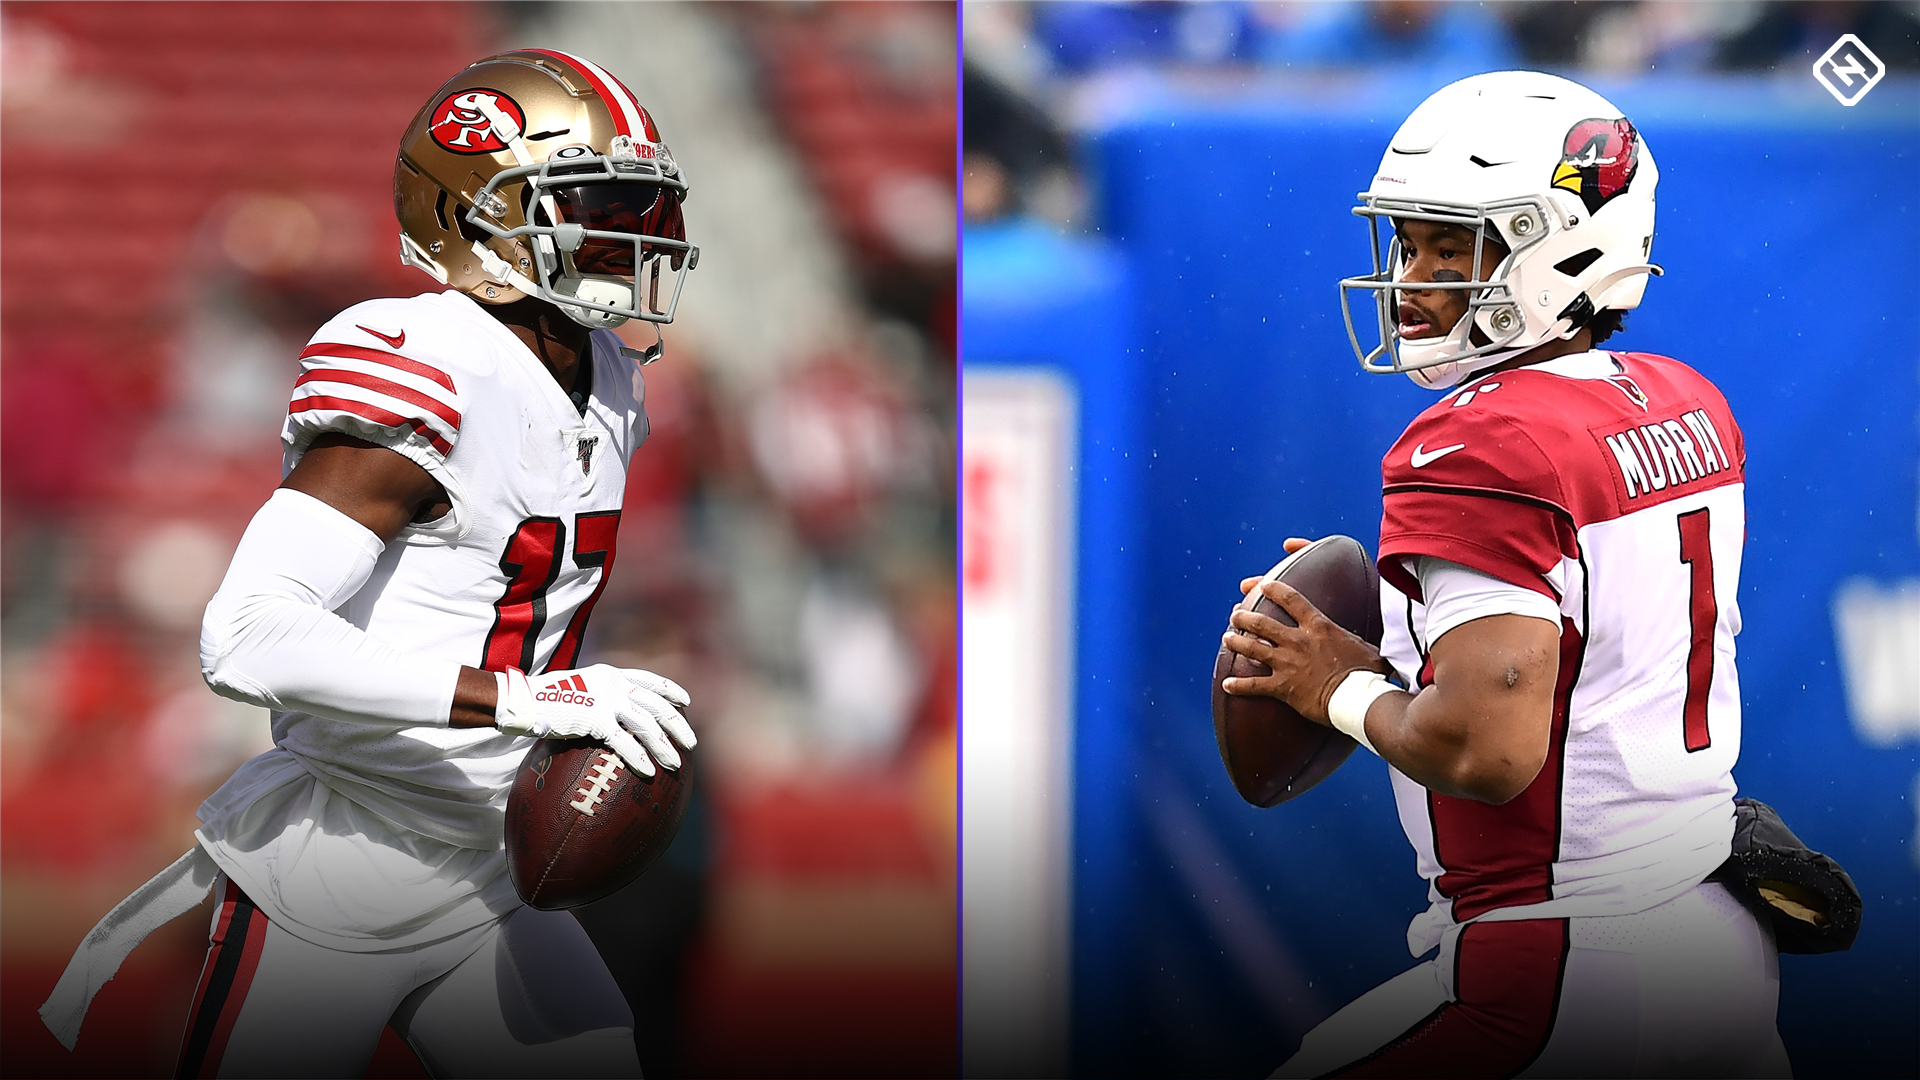 49ers vs. Cardinals: Who to start/sit in fantasy for 'Thursday Night Football'